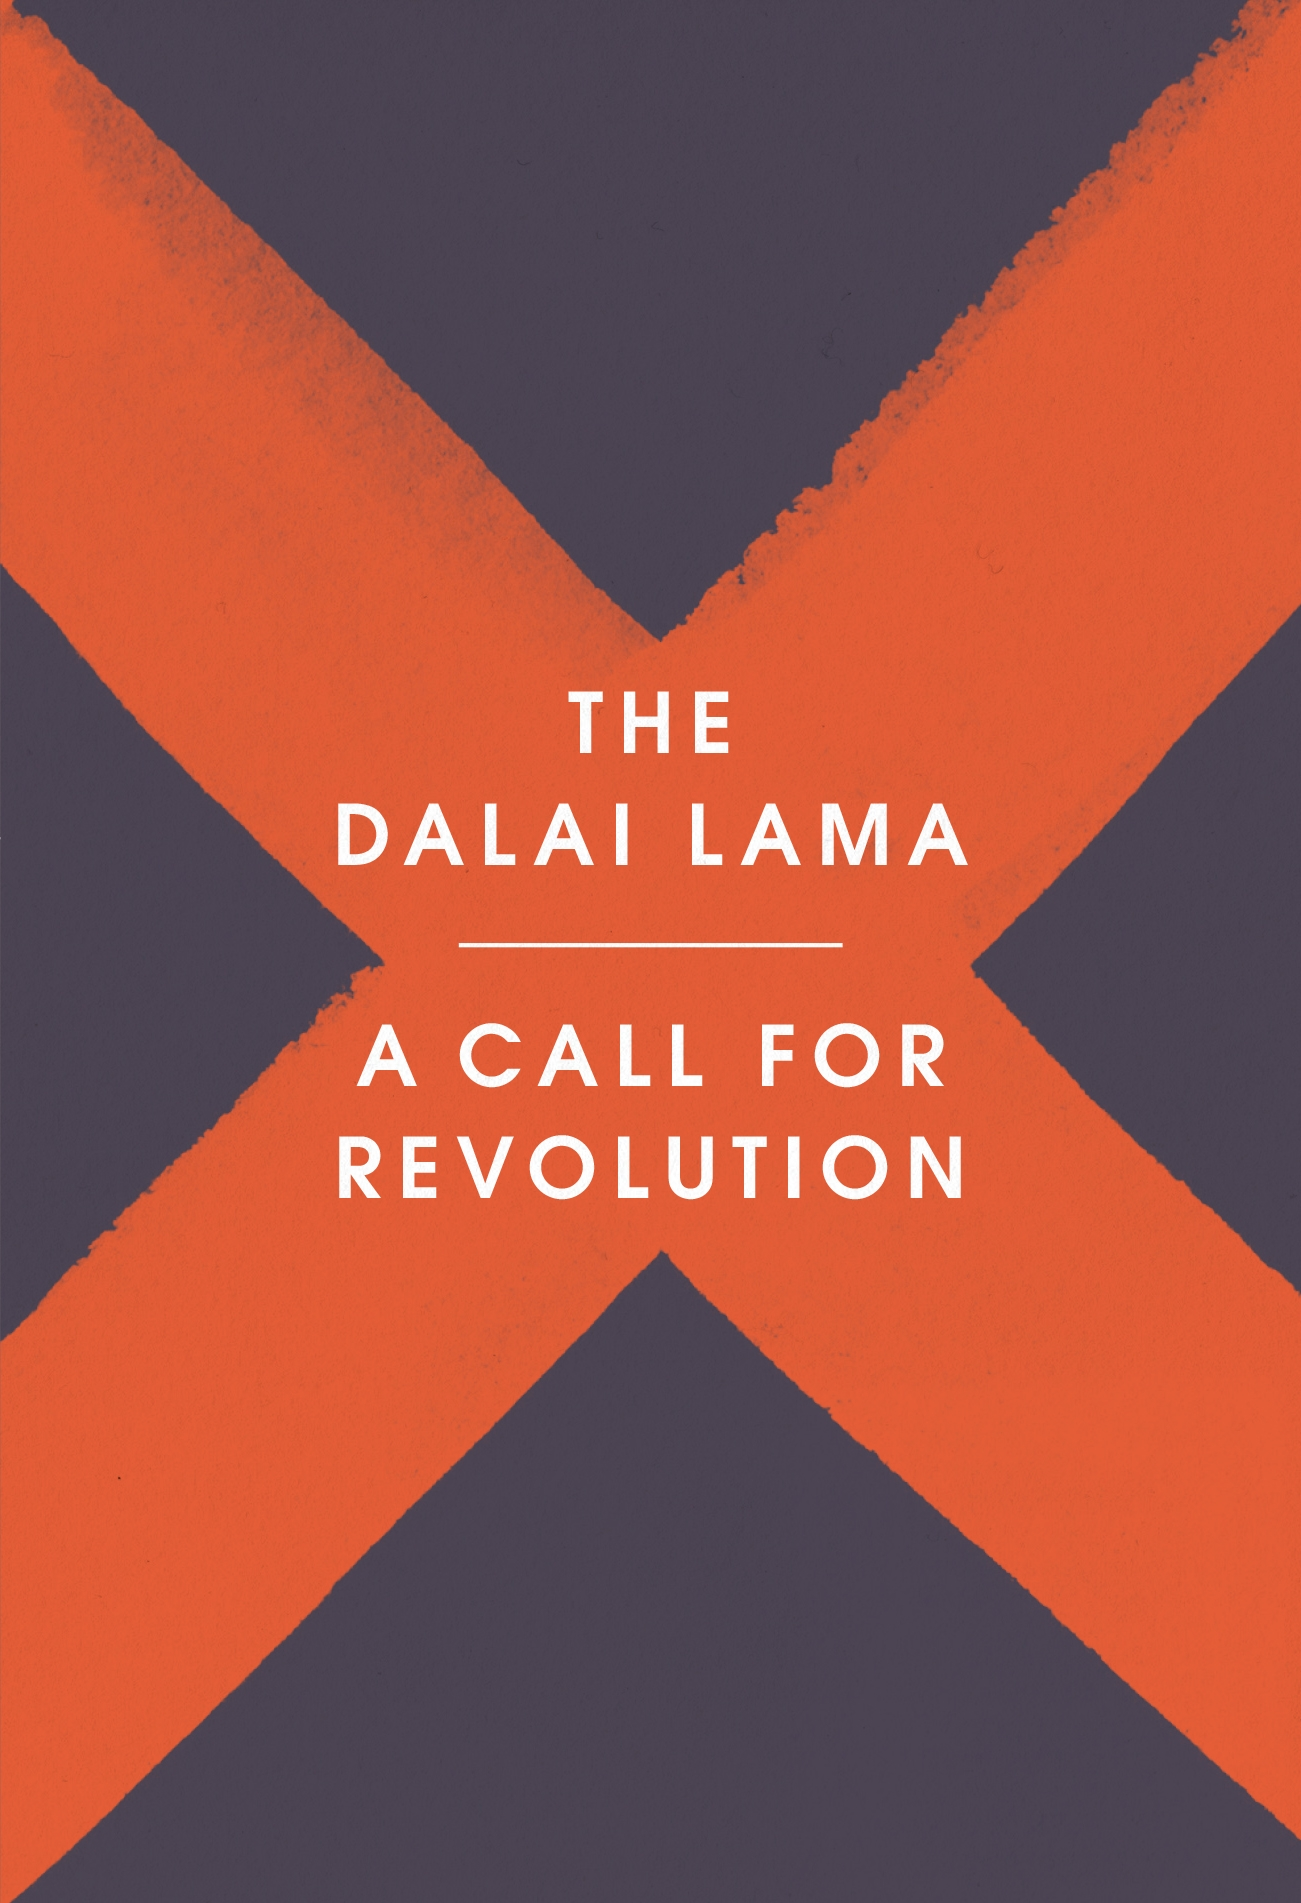 A Call for Revolution by The Dalai Lama & Sofia Stril-Rever Nobel Peace Prize, ISBN: 9781846045899